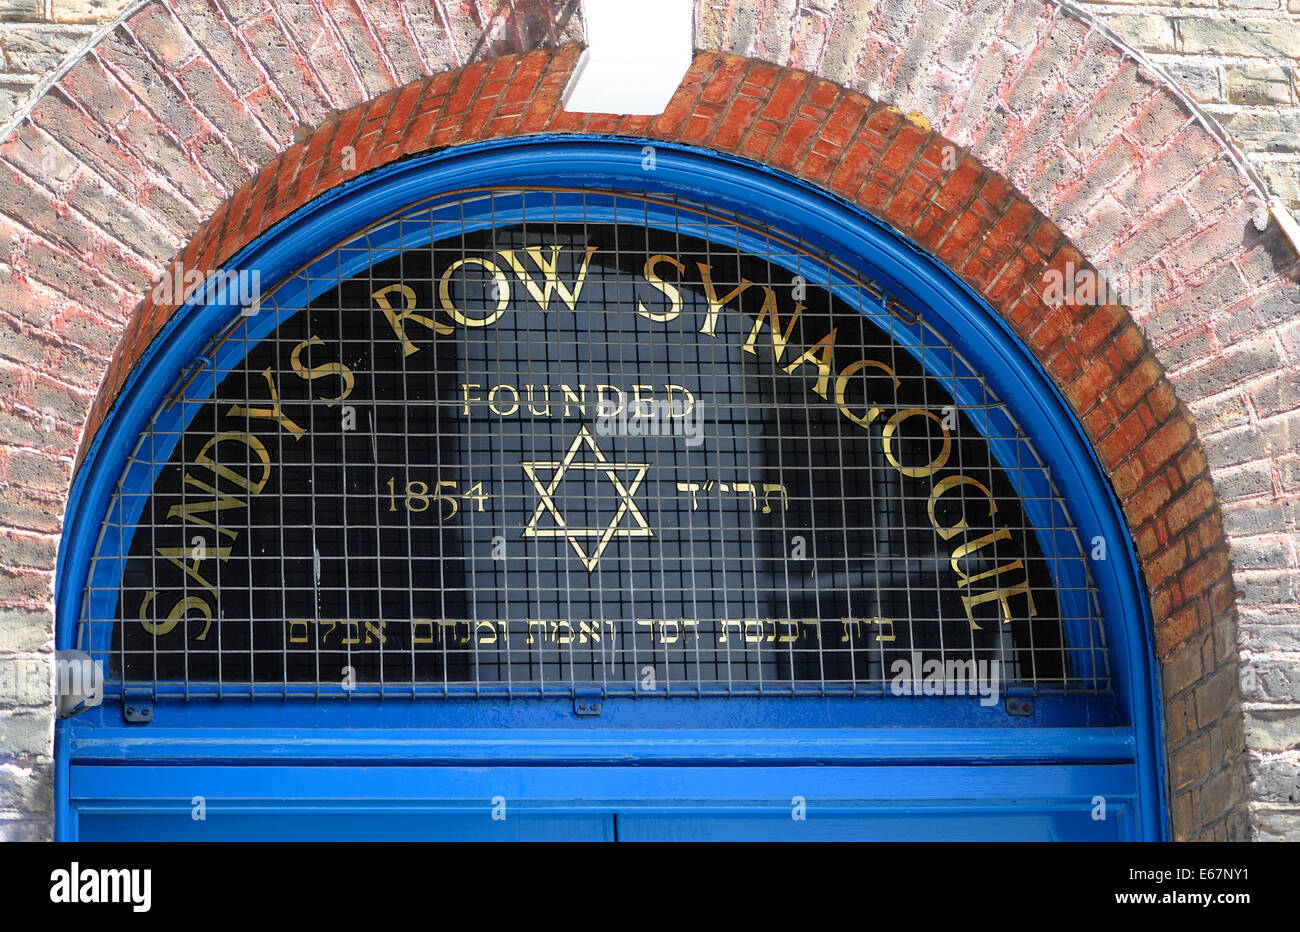 Synagogue Uk Stockfotos & Synagogue Uk Bilder - Alamy